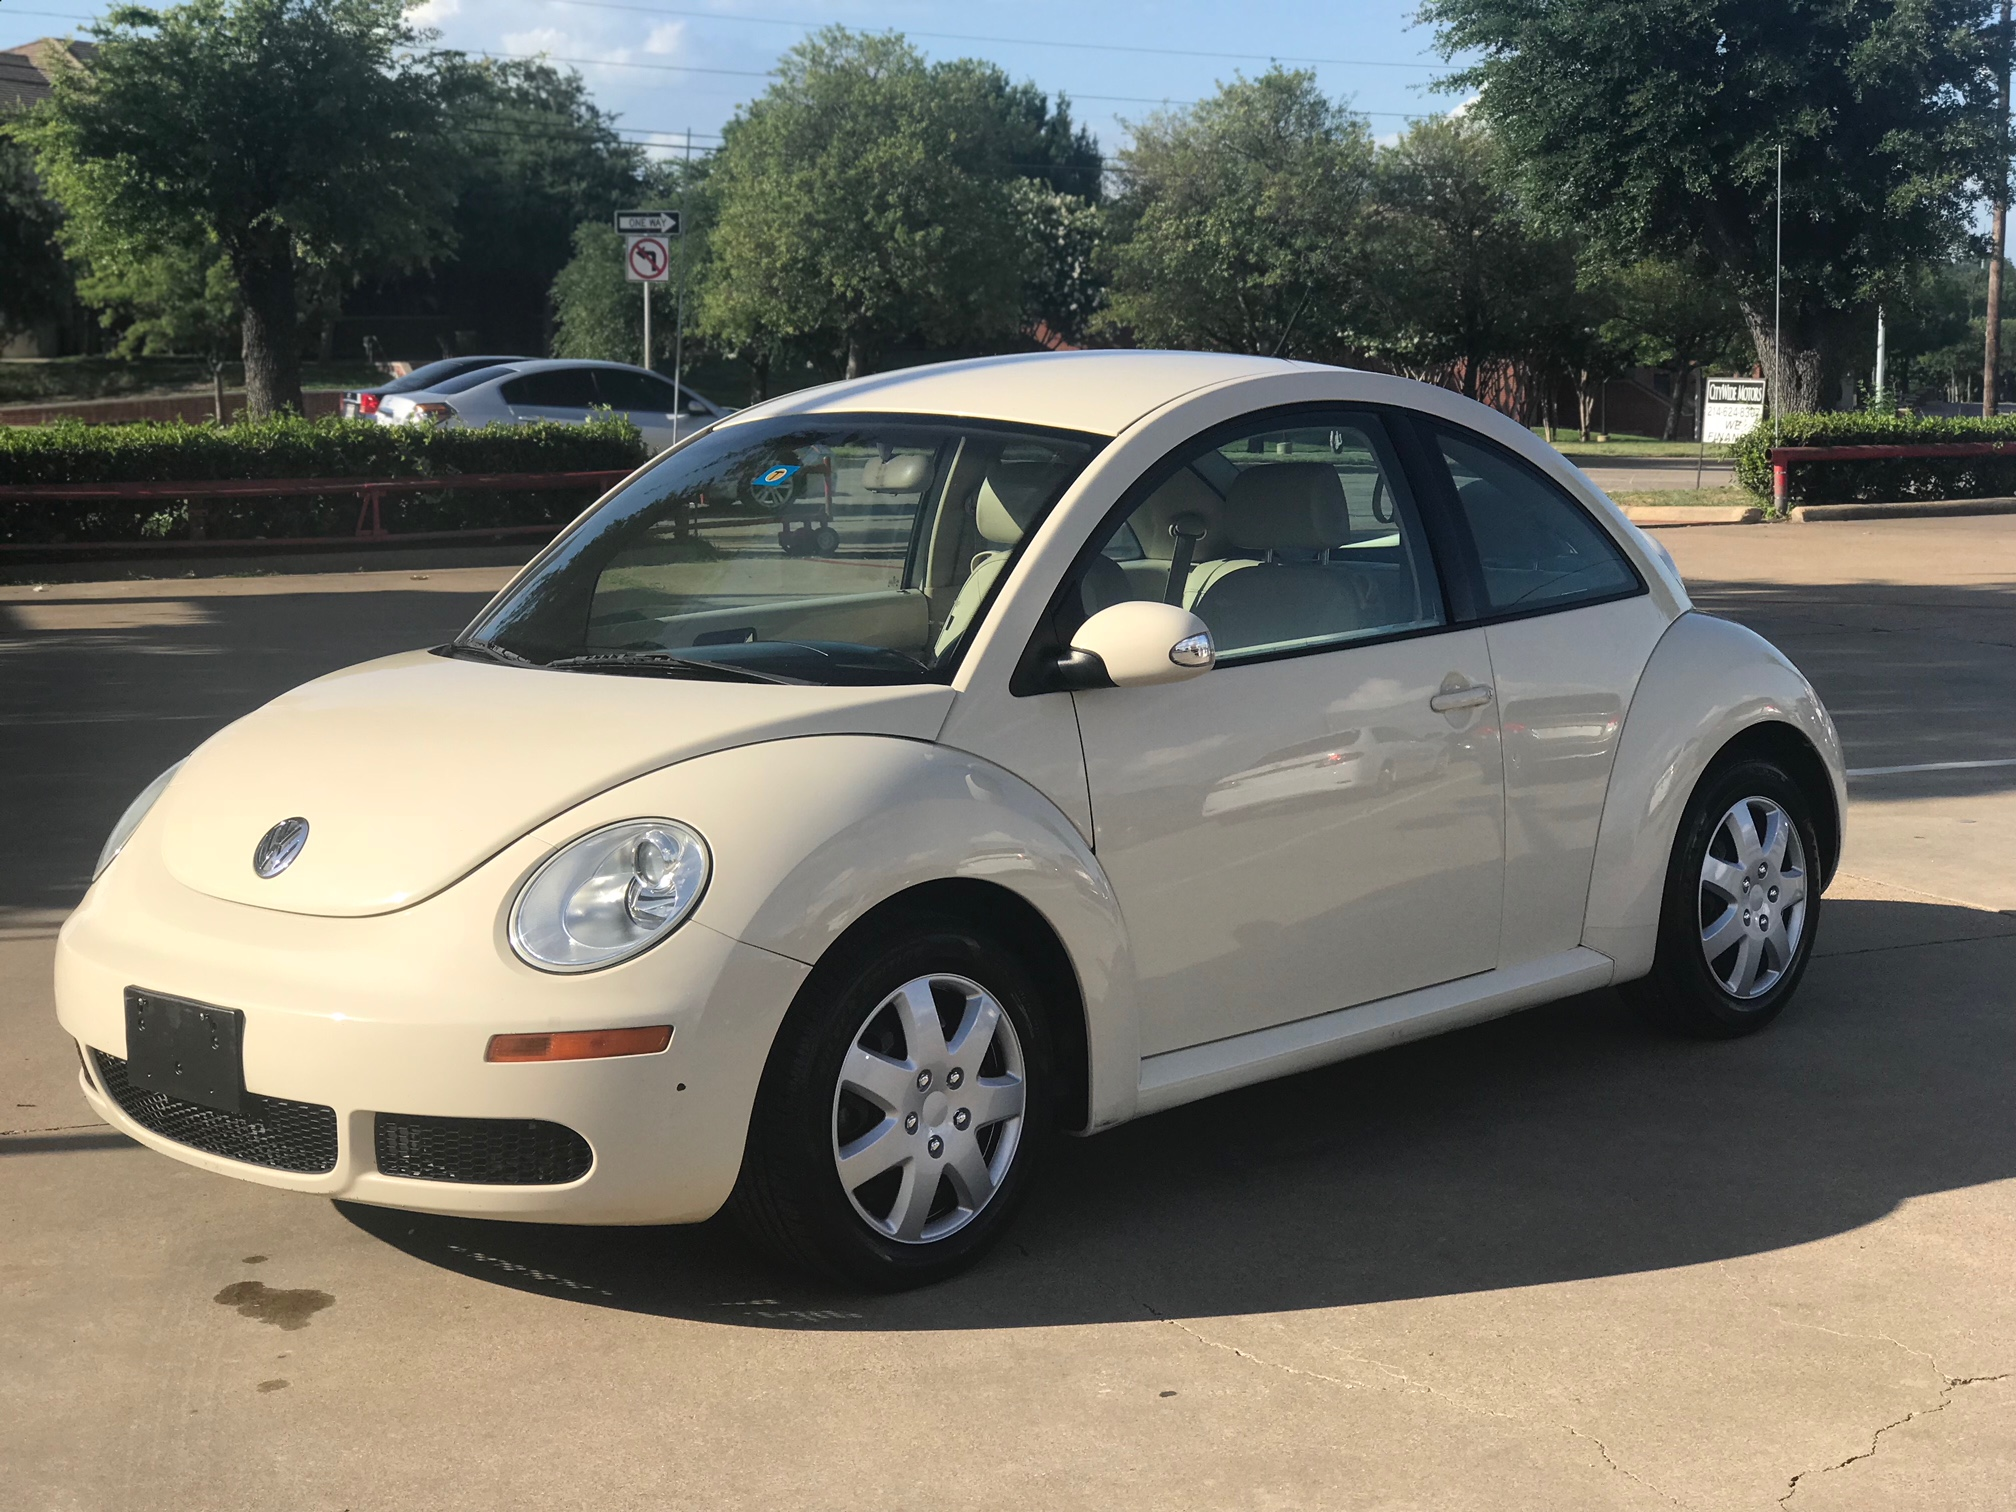 Volkswagen Beetle Cash for Cars